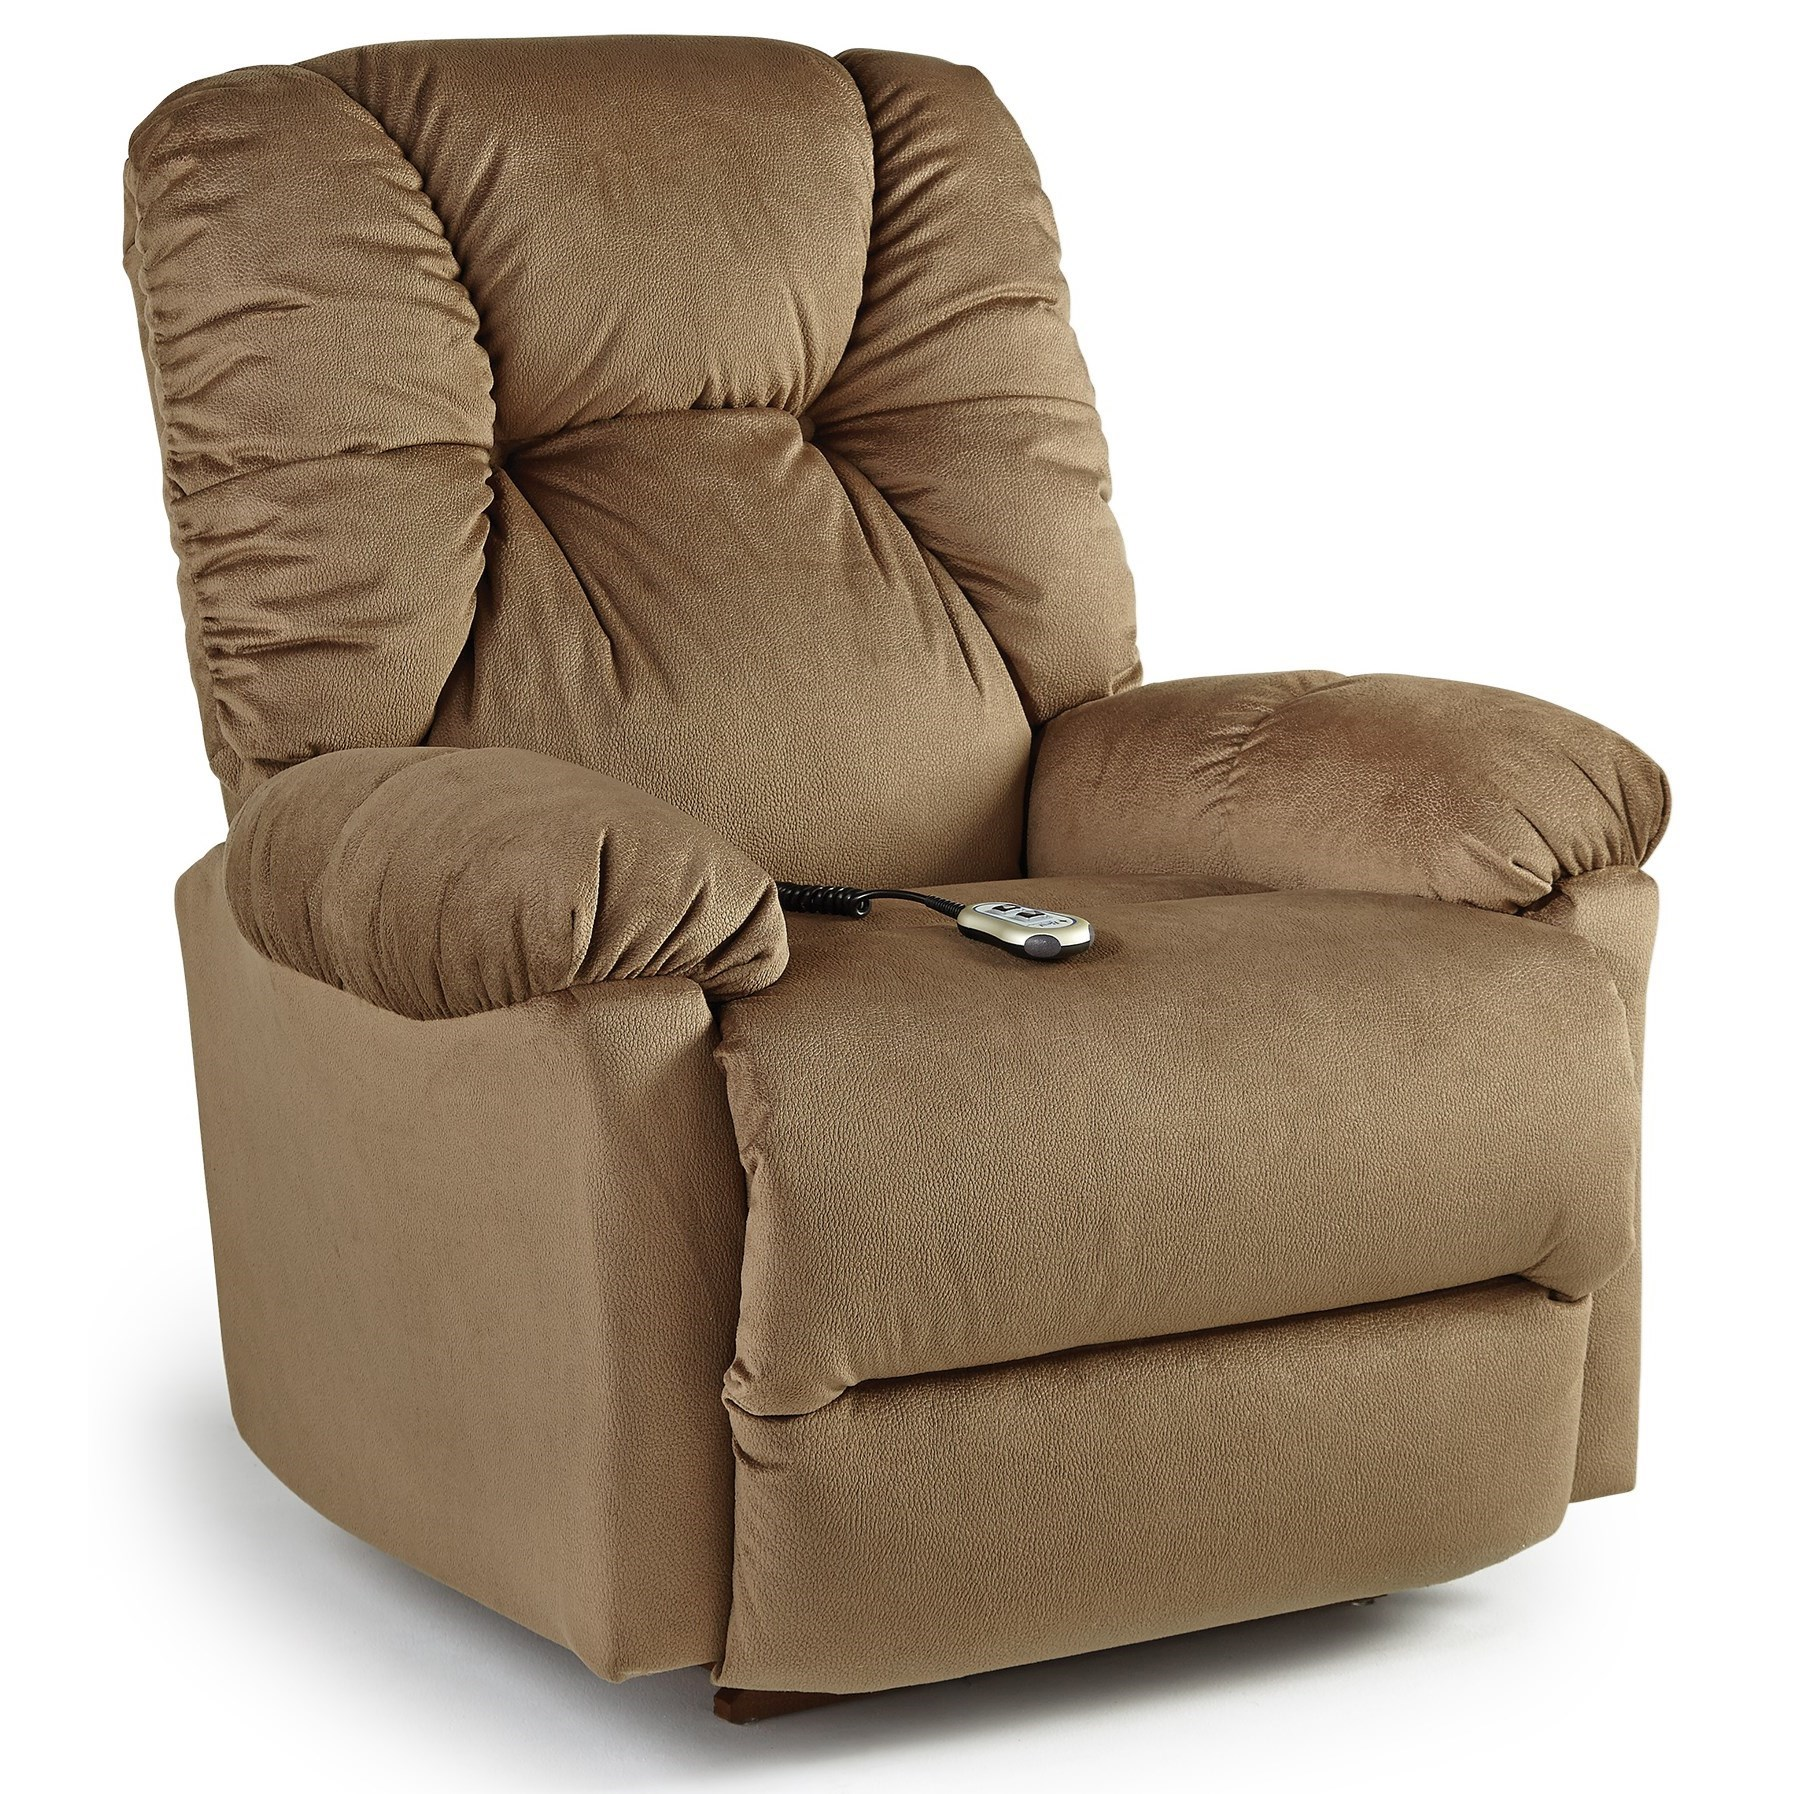 Best Home Furnishings Medium Recliners Power Rocking